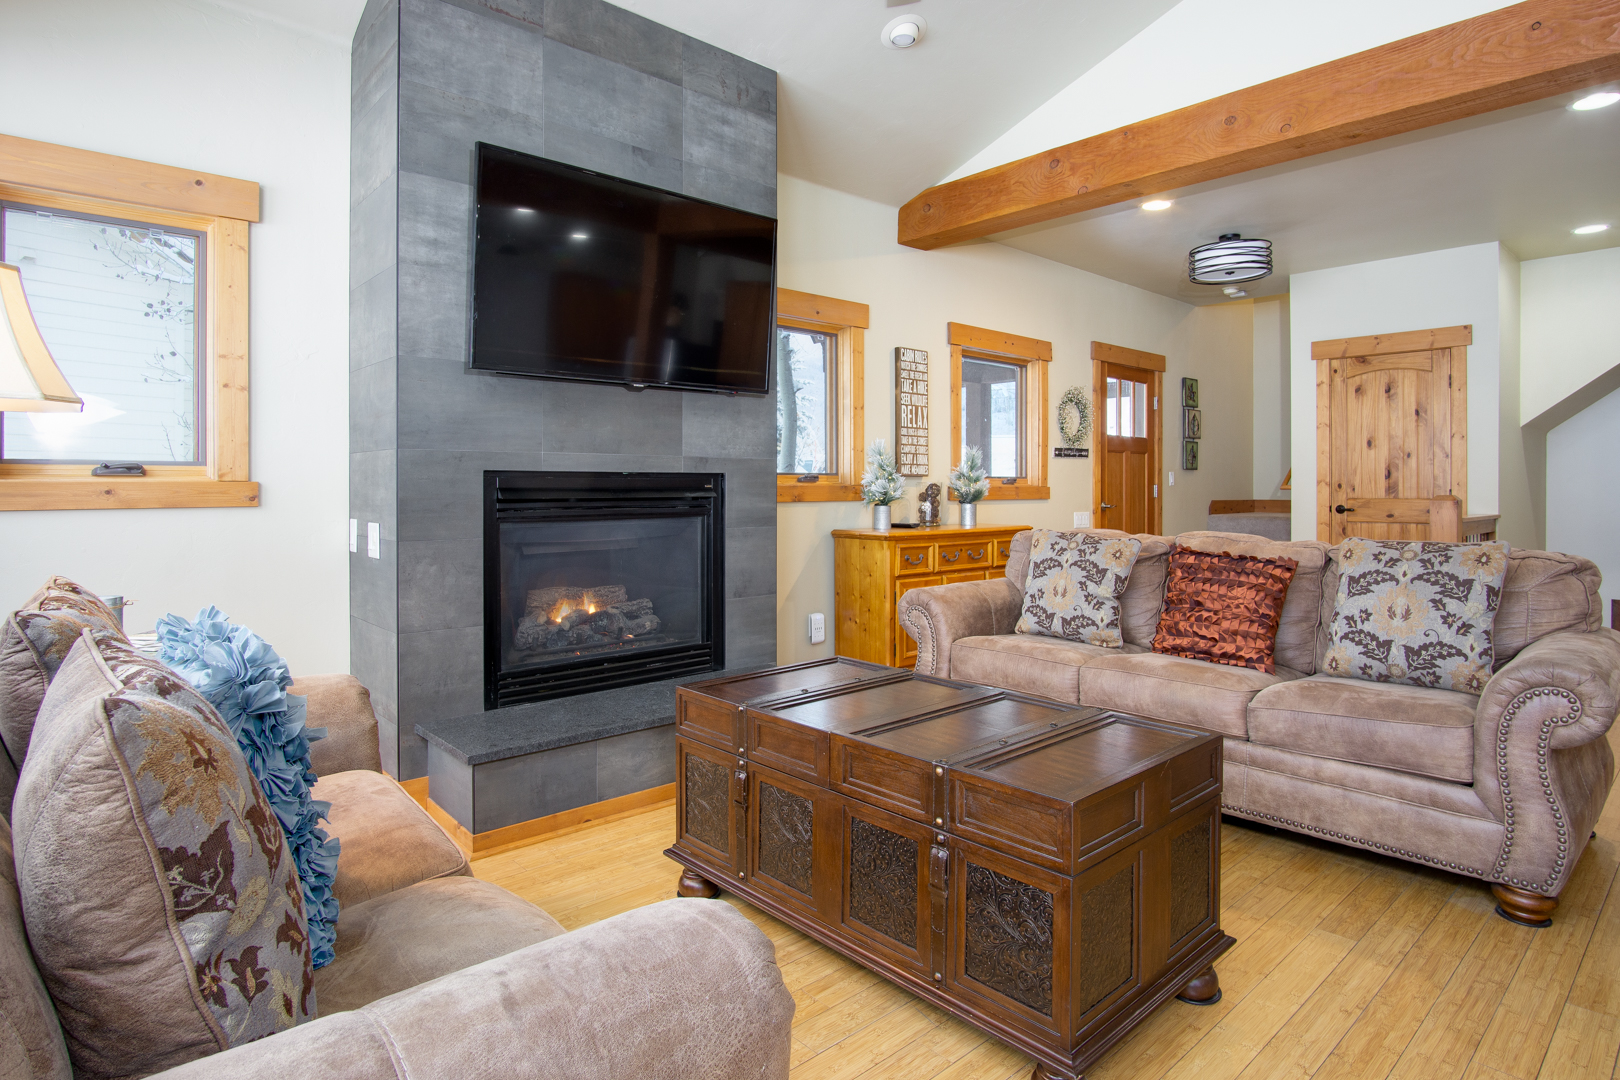 Our warm and inviting living room is a great place to relax after playing hard in Steamboat all day long.